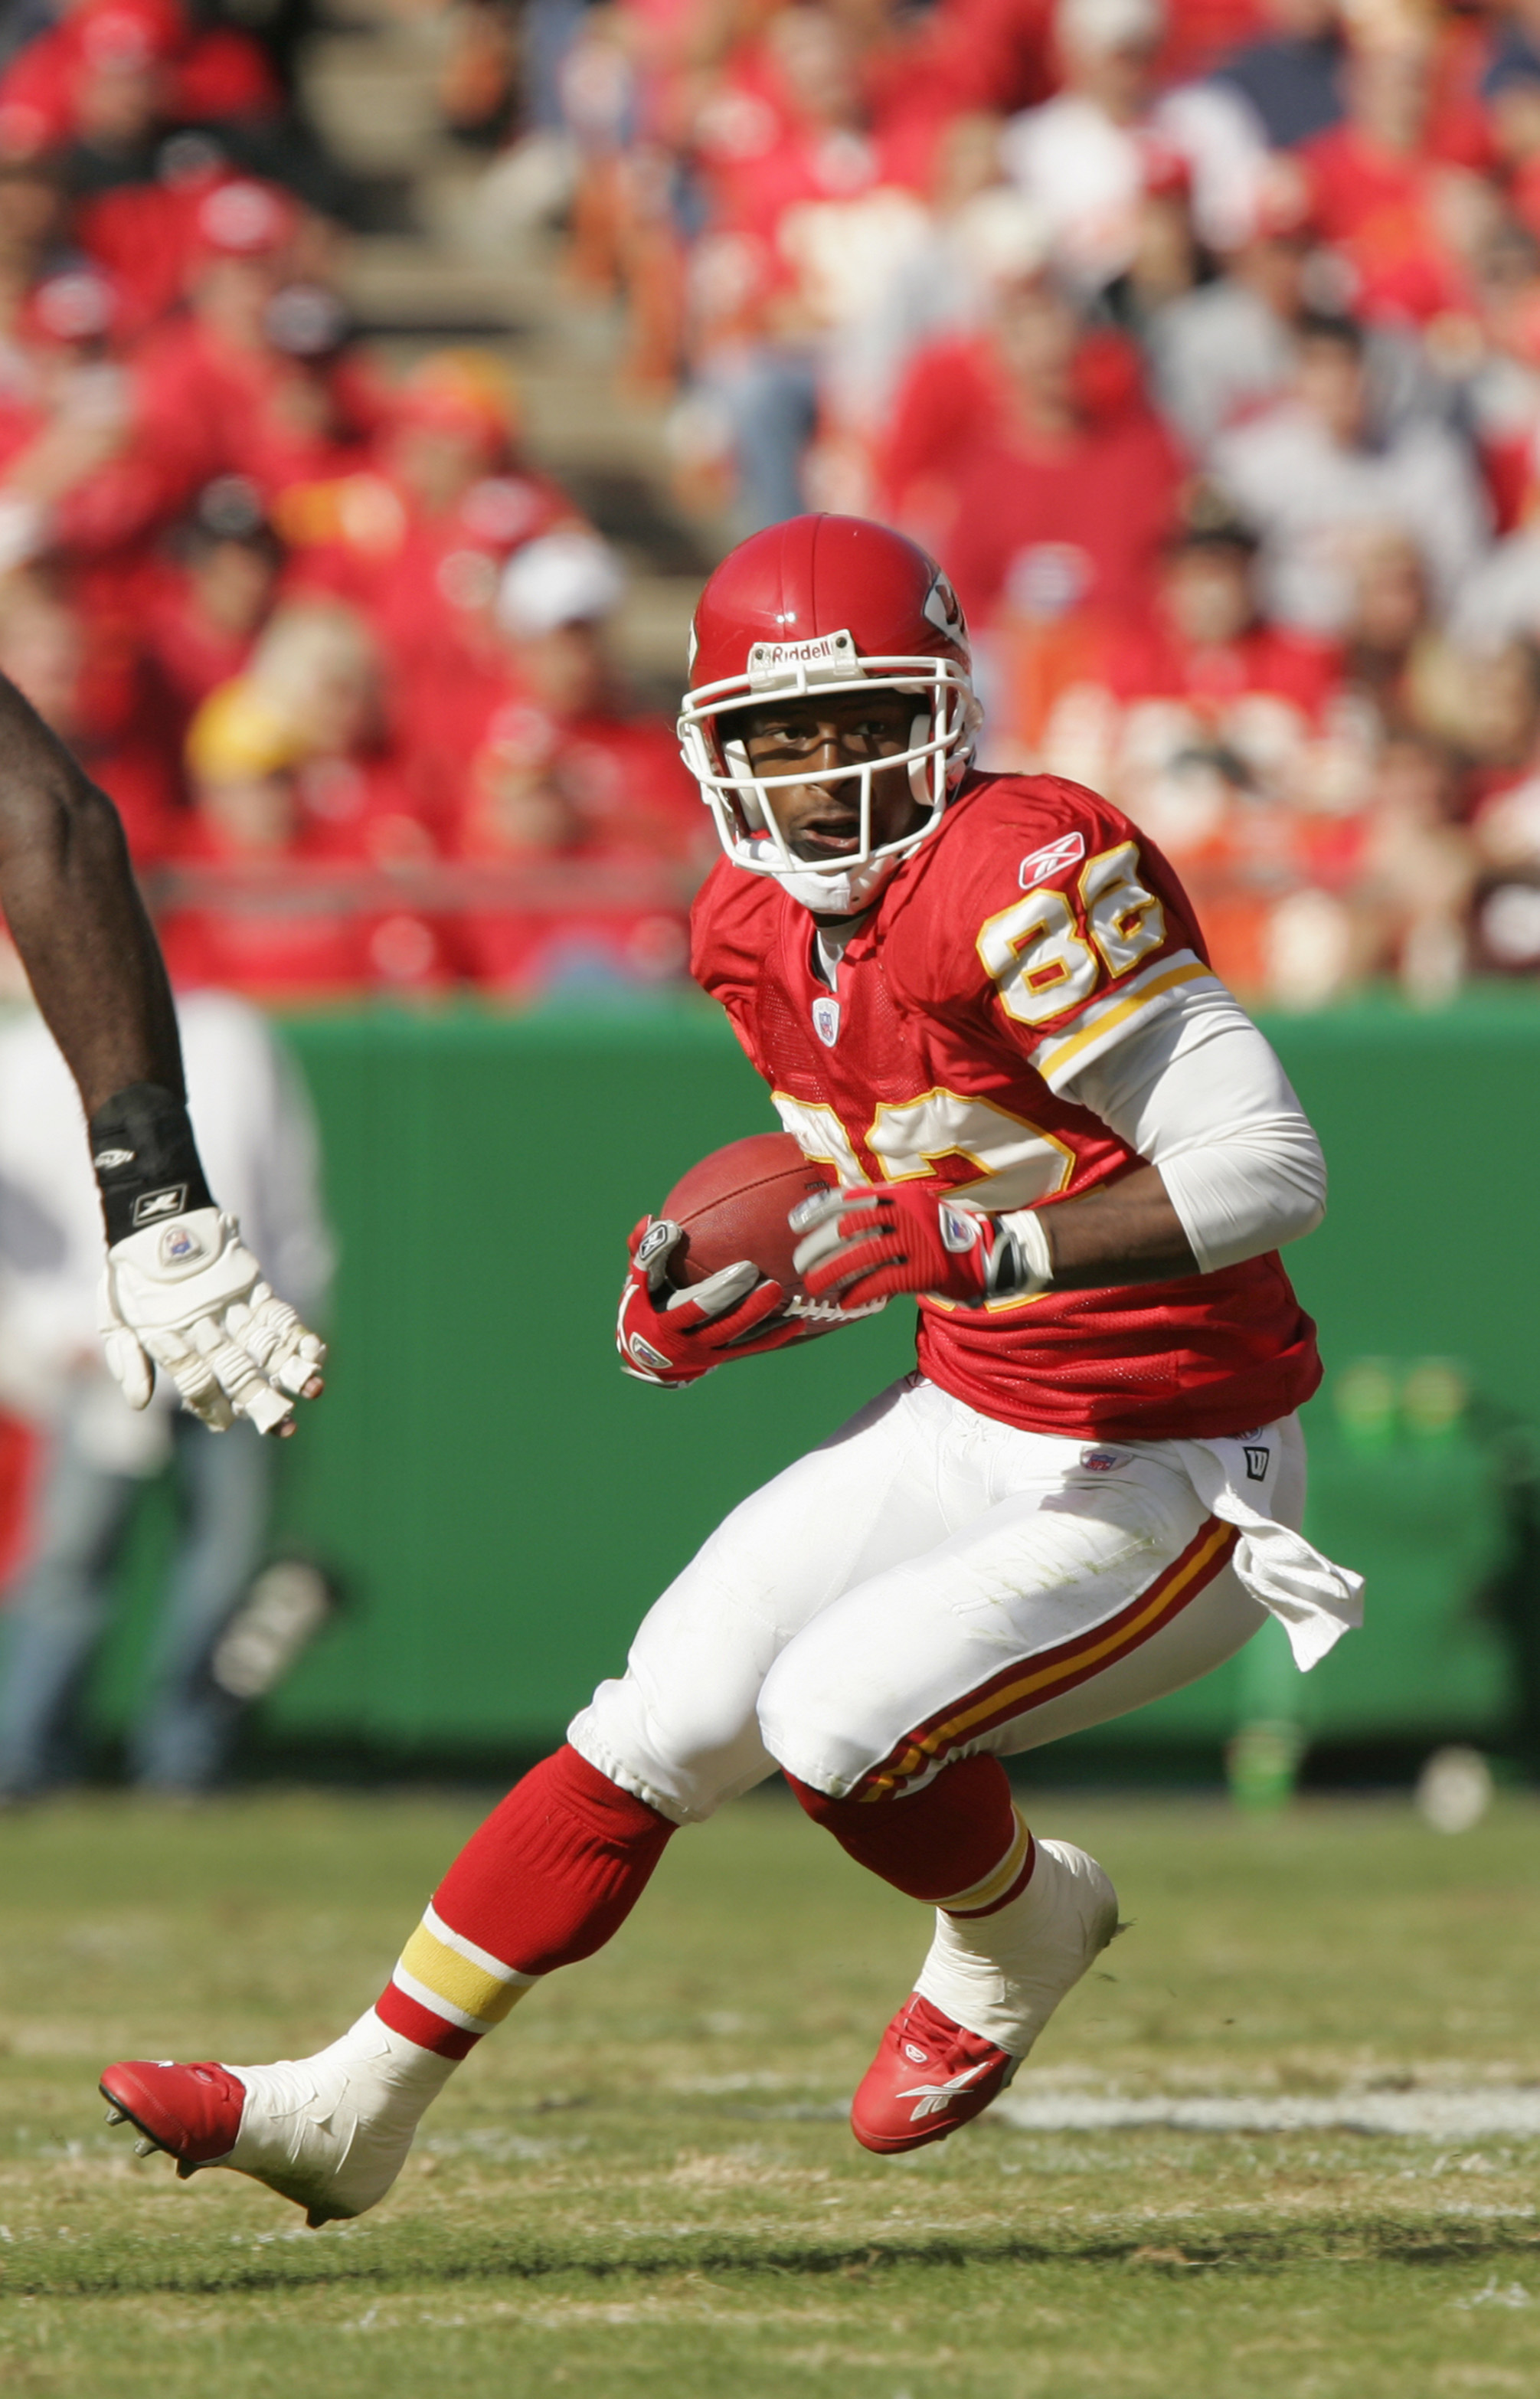 KANSAS CITY, MO - NOVEMBER 6:  Dante Hall #82 of the Kansas City Chiefs carries the ball during the game agianst the Oakland Raiders on November 6, 2005 at Arrowhead Stadium in Kansas City, Missouri.  The Chiefs won 27-23. (Photo by Brian Bahr/Getty Image